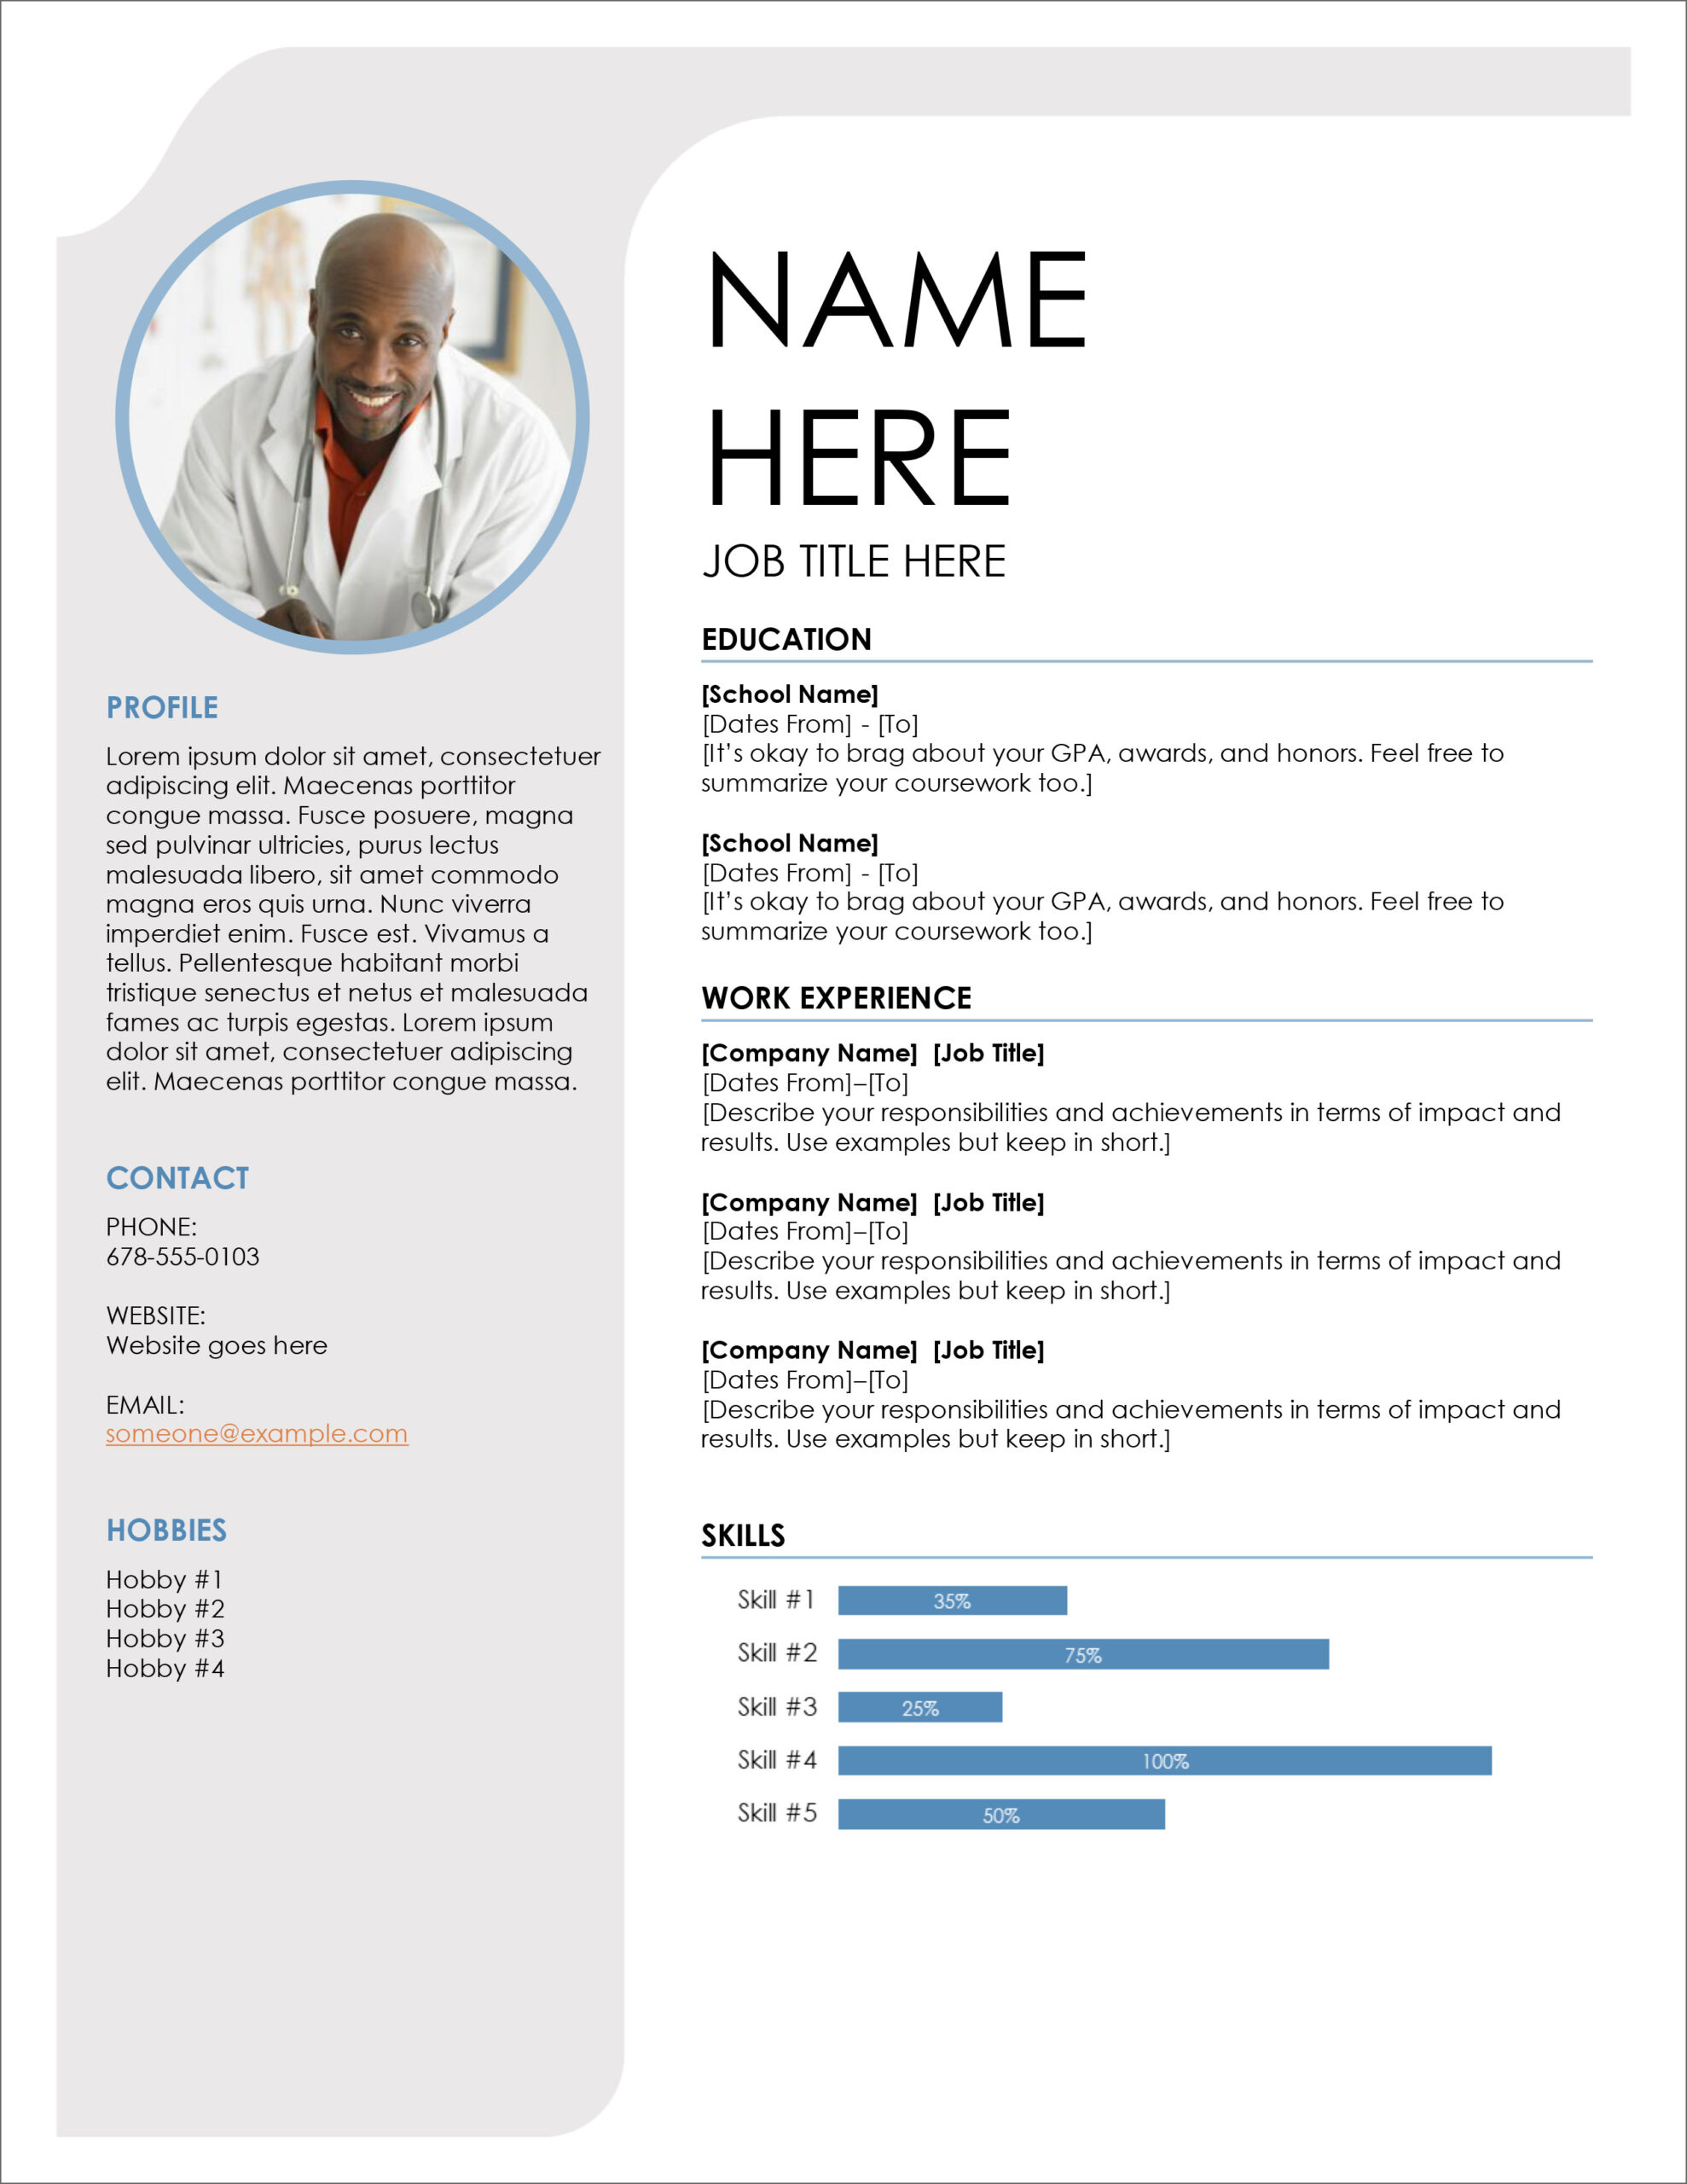 free modern resume cv templates minimalist simple clean design template microsoft for Resume Canadian Resume Template Free